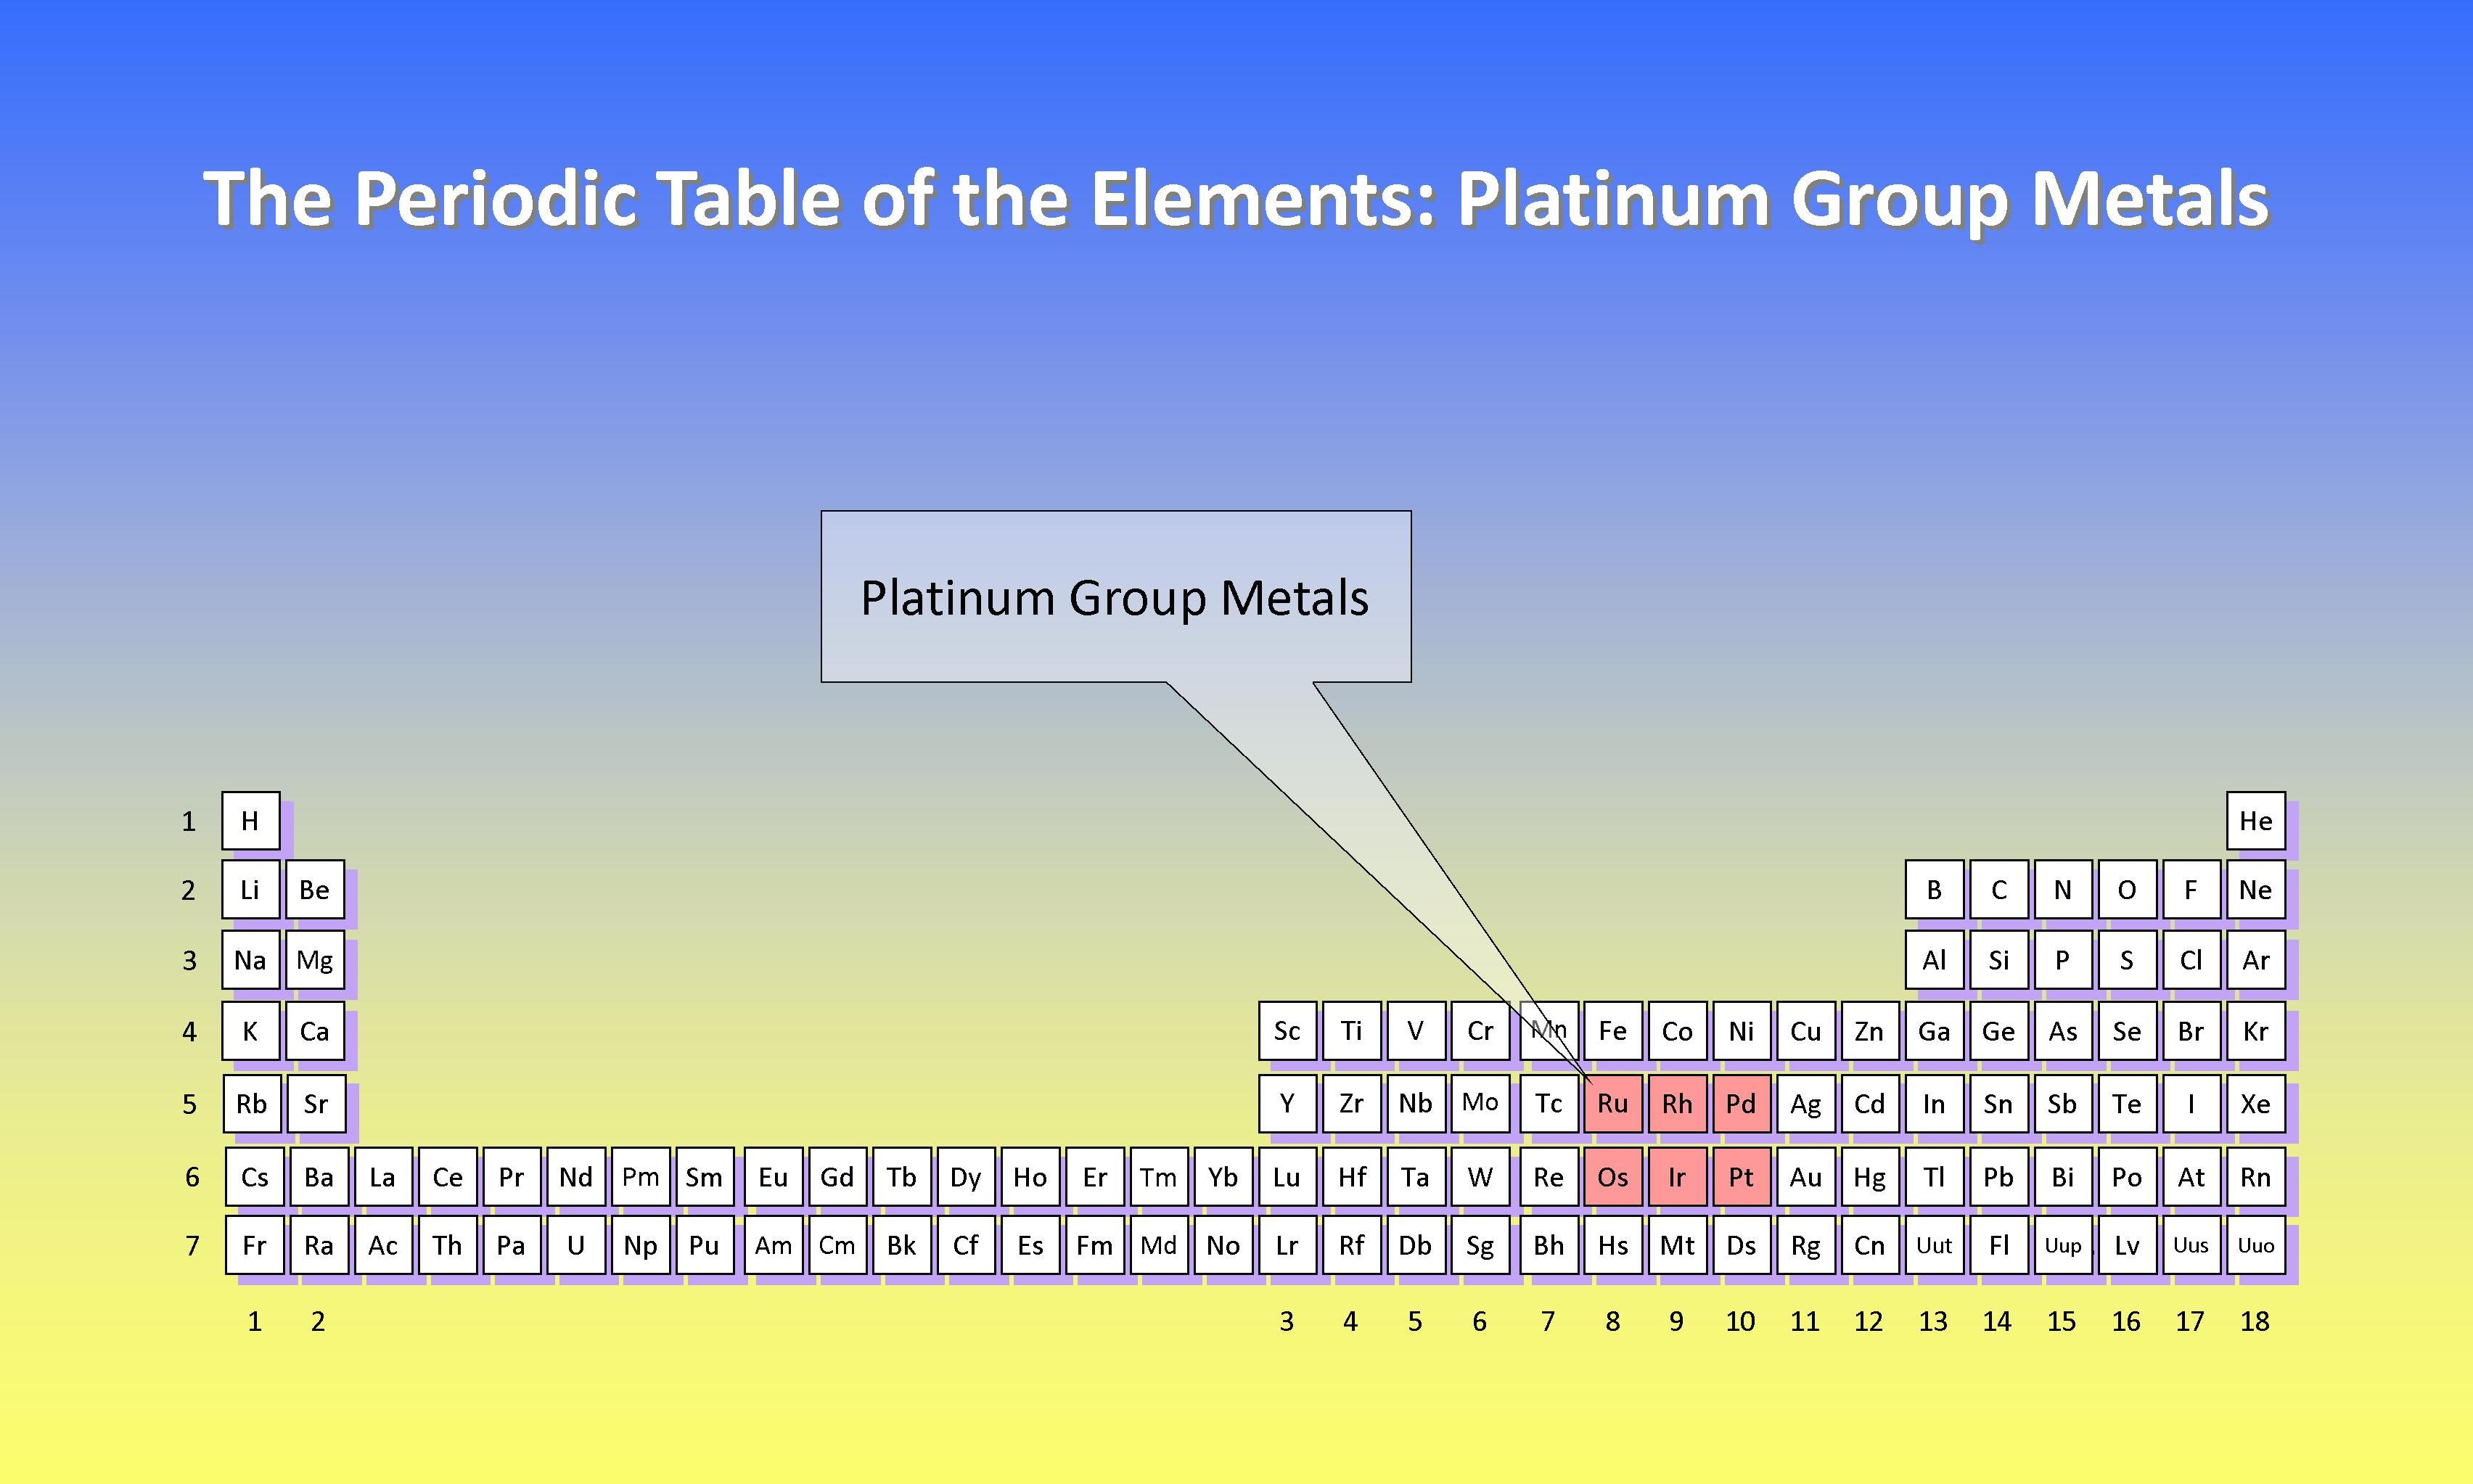 The location of the platinum group metals in the periodic table of the elements.